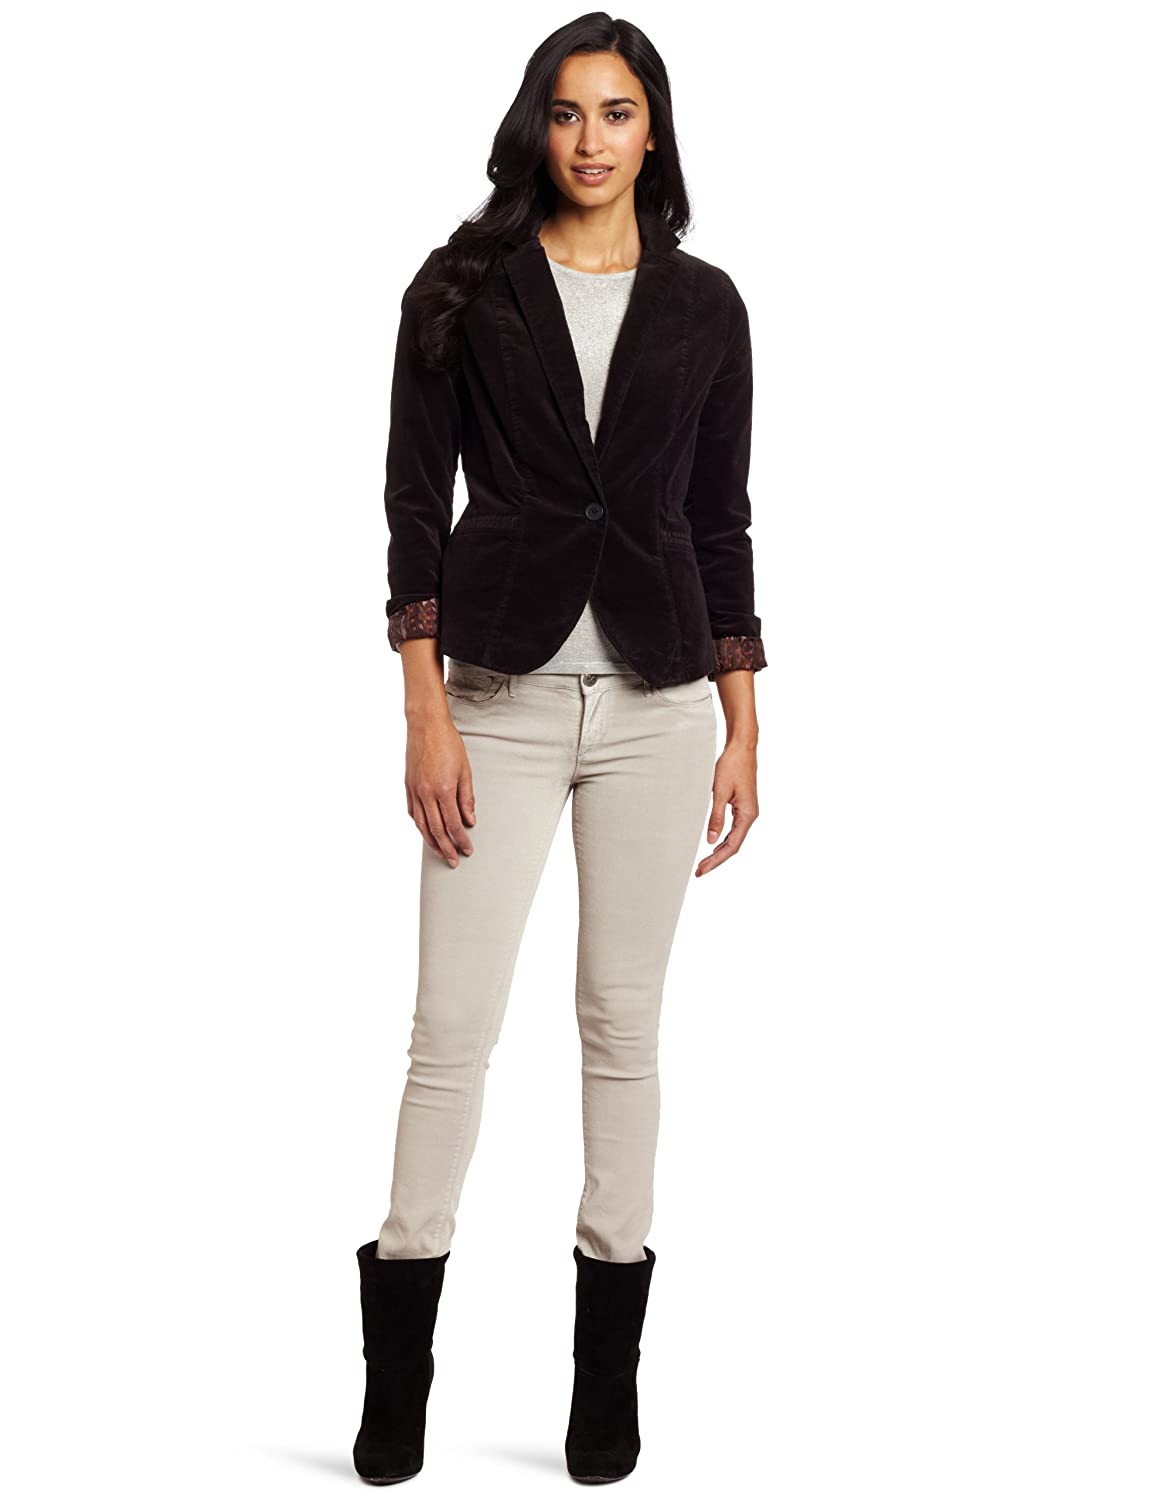 5f9fb7a62c3e1 Calvin Klein Jeans Women's Power Stretch Corduroy Blazer at Amazon Women's  Clothing store: Blazers And Sports Jackets